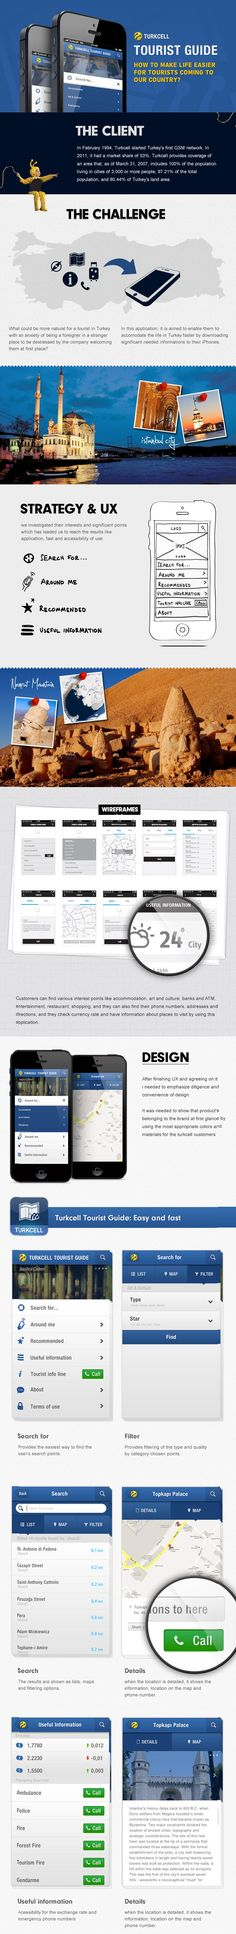 Turkcell Tourist Guide App by Serhat Ozirik, via Behance *** How to make life easier for tourists coming to our country?